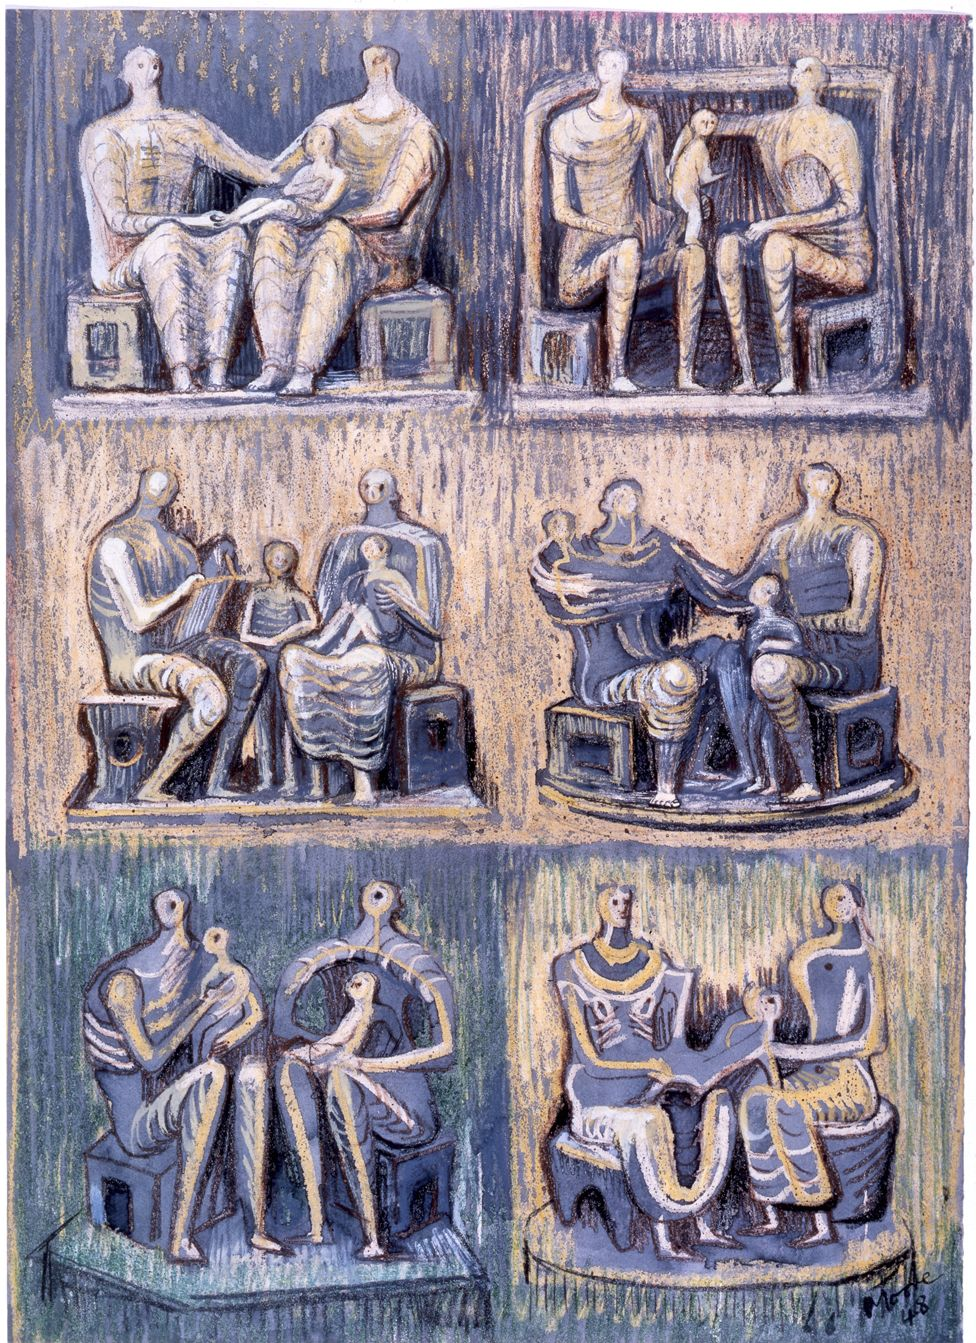 A series of sketches of family figures in a group